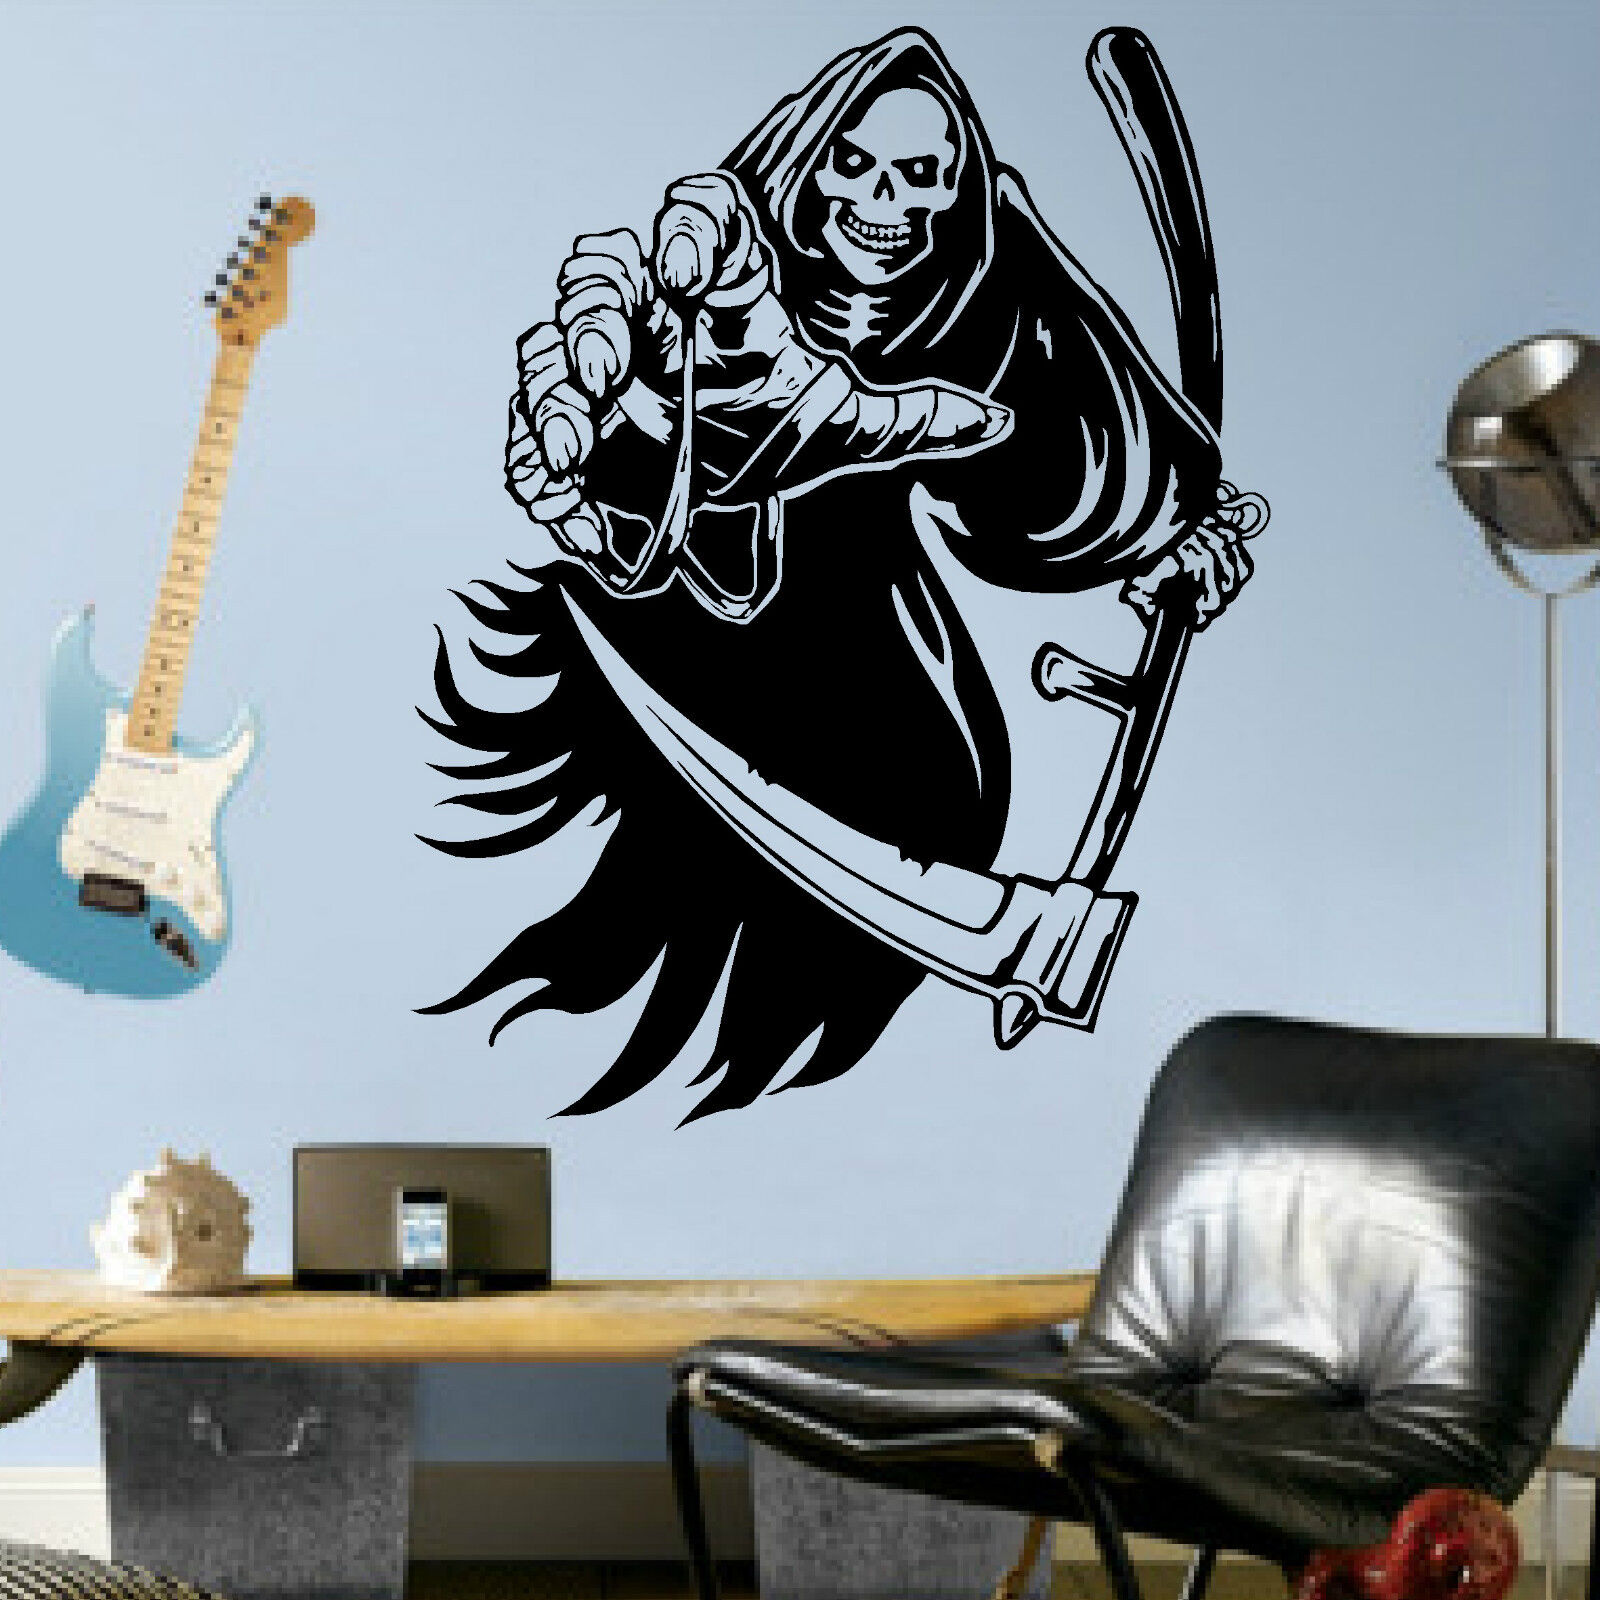 Sheeting for bathroom walls - The Grim Reaper Vinyl Wall Art Decal Sticker Ebay